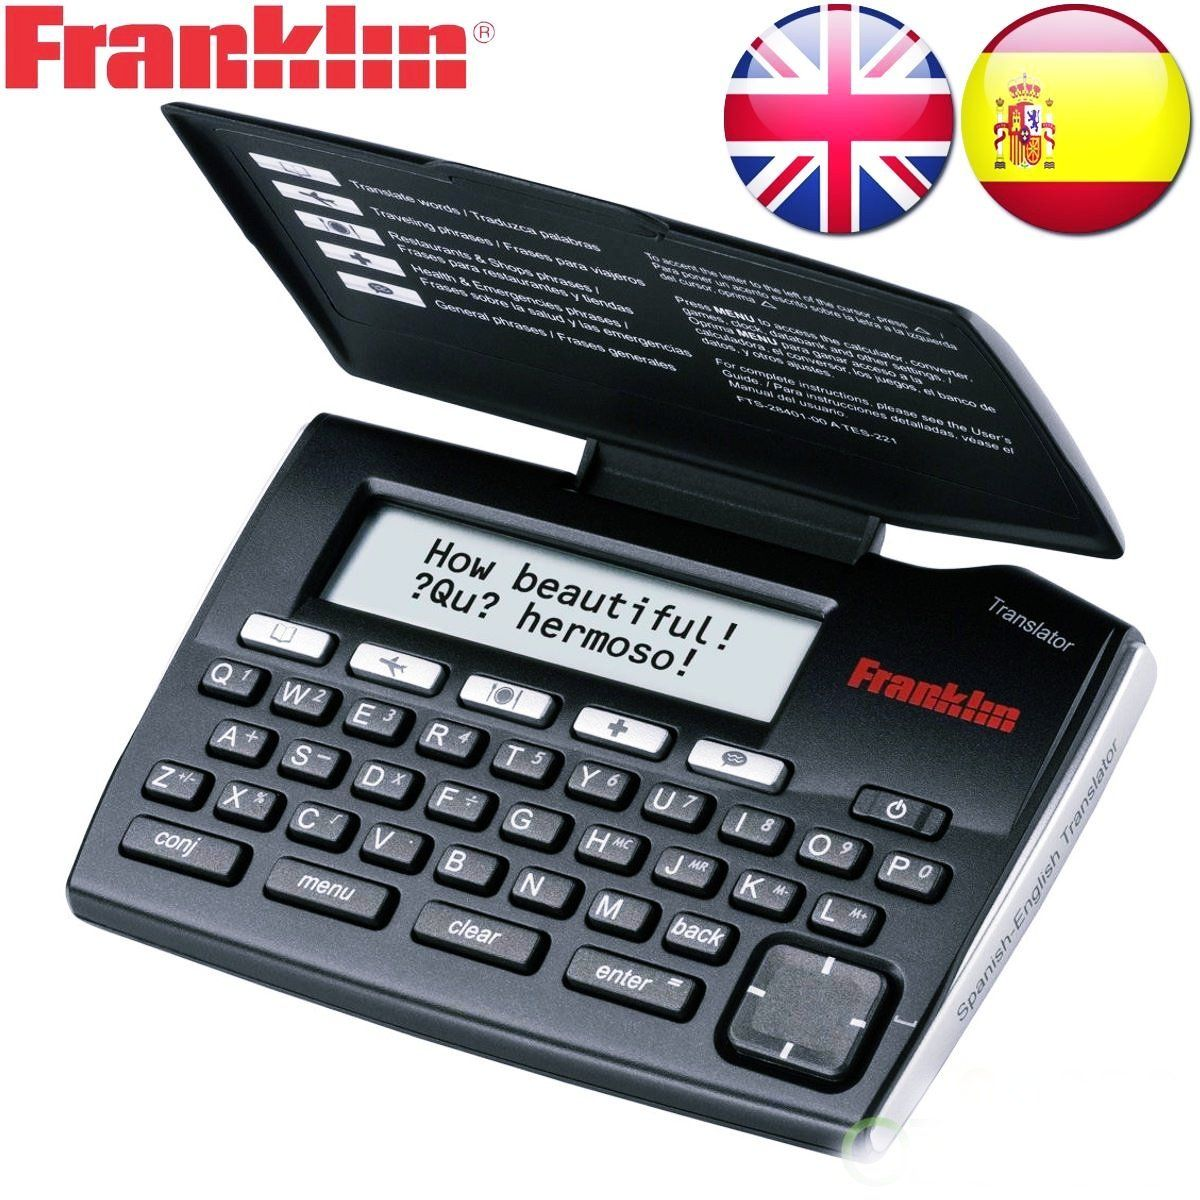 Franklin english spanish phrasebook and translator travel device tes221 communicate easily in english and